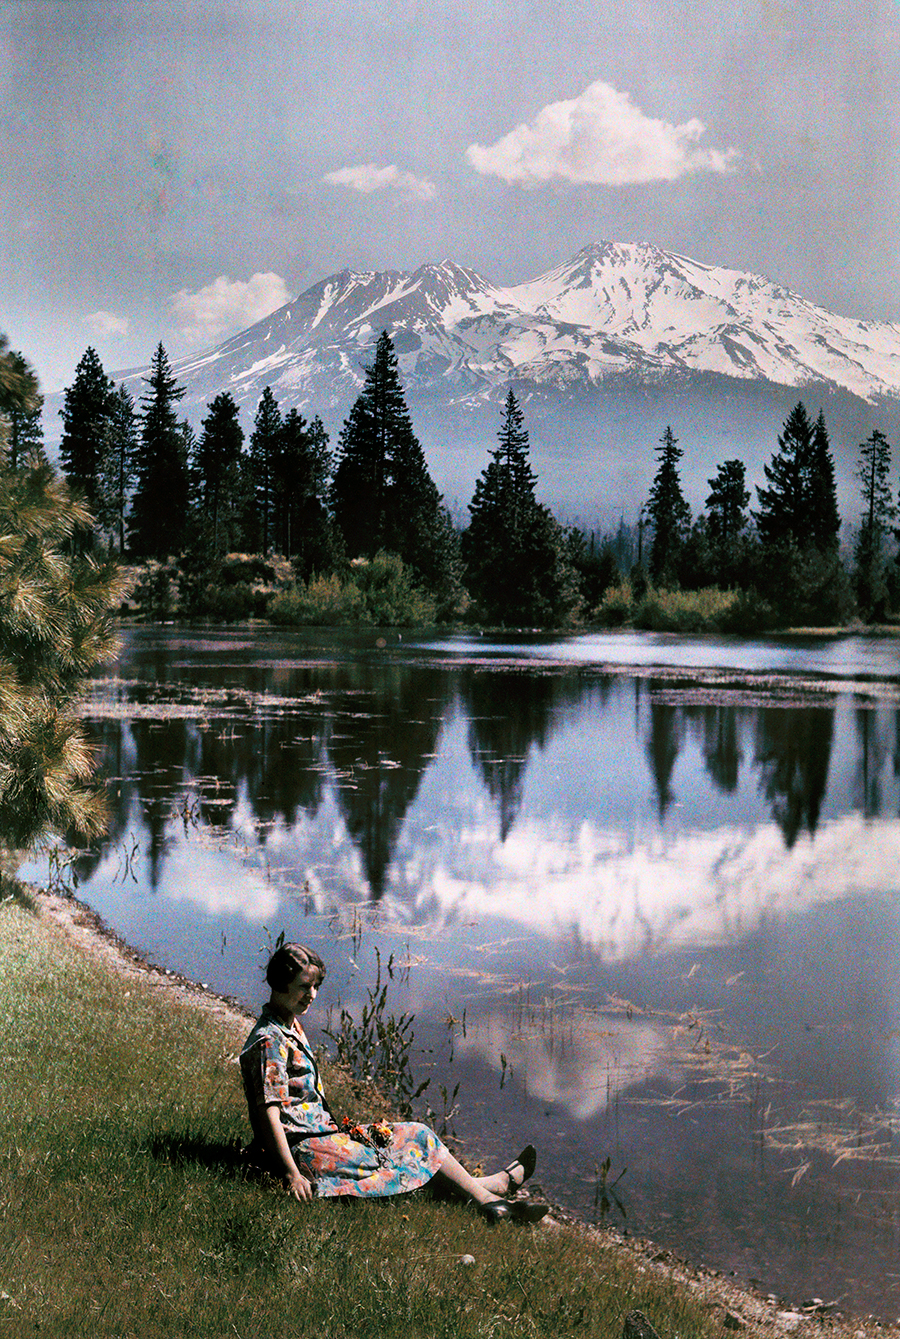 A vintage landscape reminiscent of the Sound of Music. Don't let the snow-capped mountains fool you, this was taken in the United States! California, 1929. PHOTOGRAPH BY CHARLES MARTIN, NATIONAL GEOGRAPHIC CREATIVE